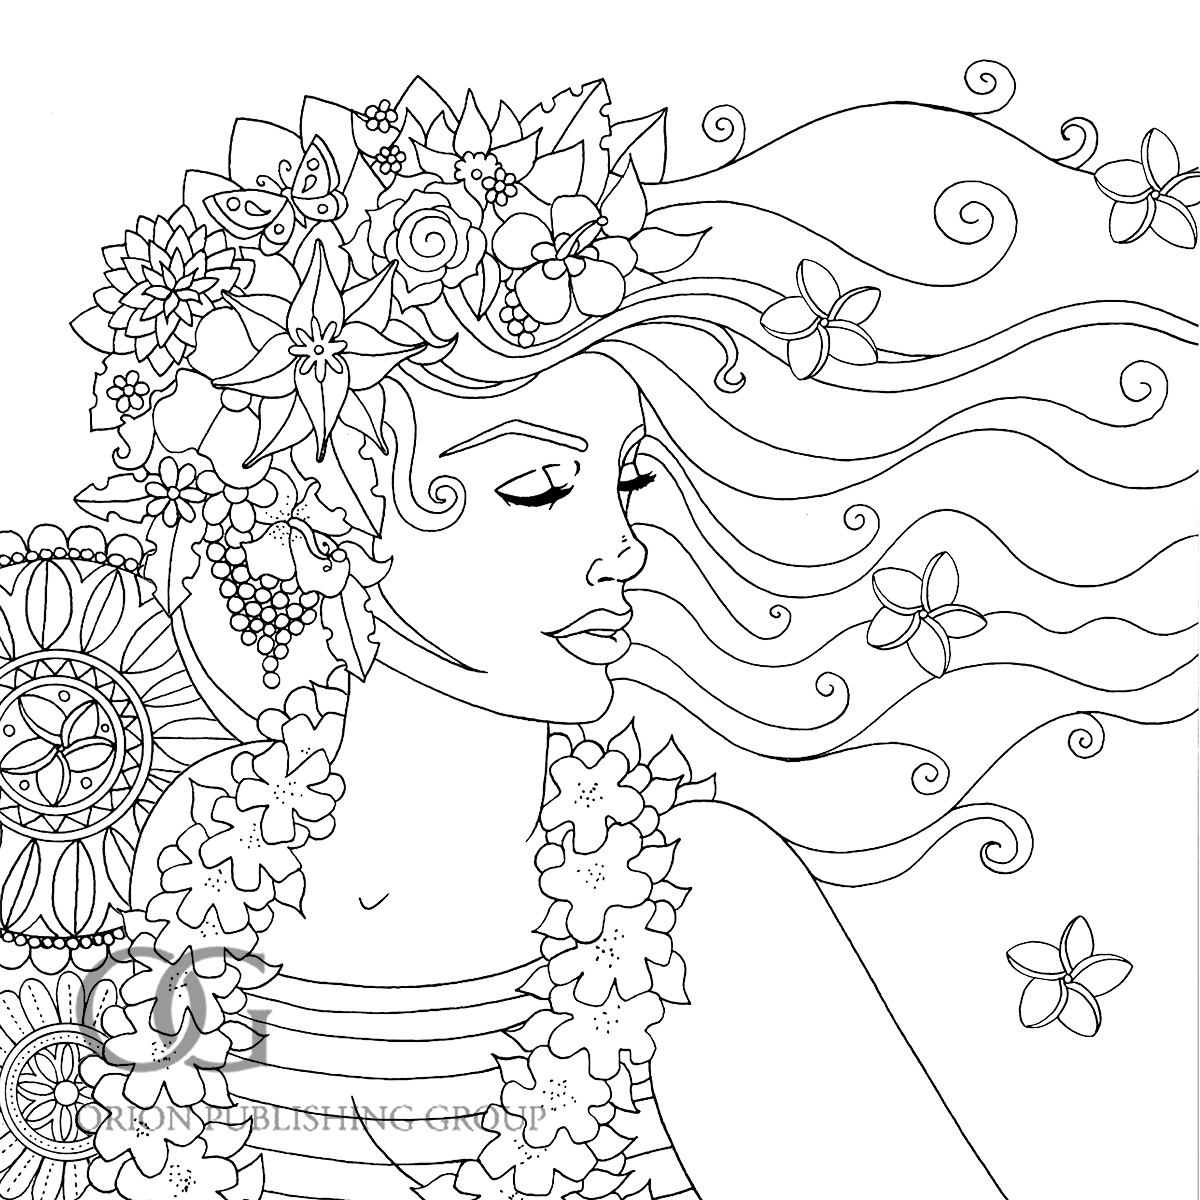 free mindfulness coloring pages - photo#17